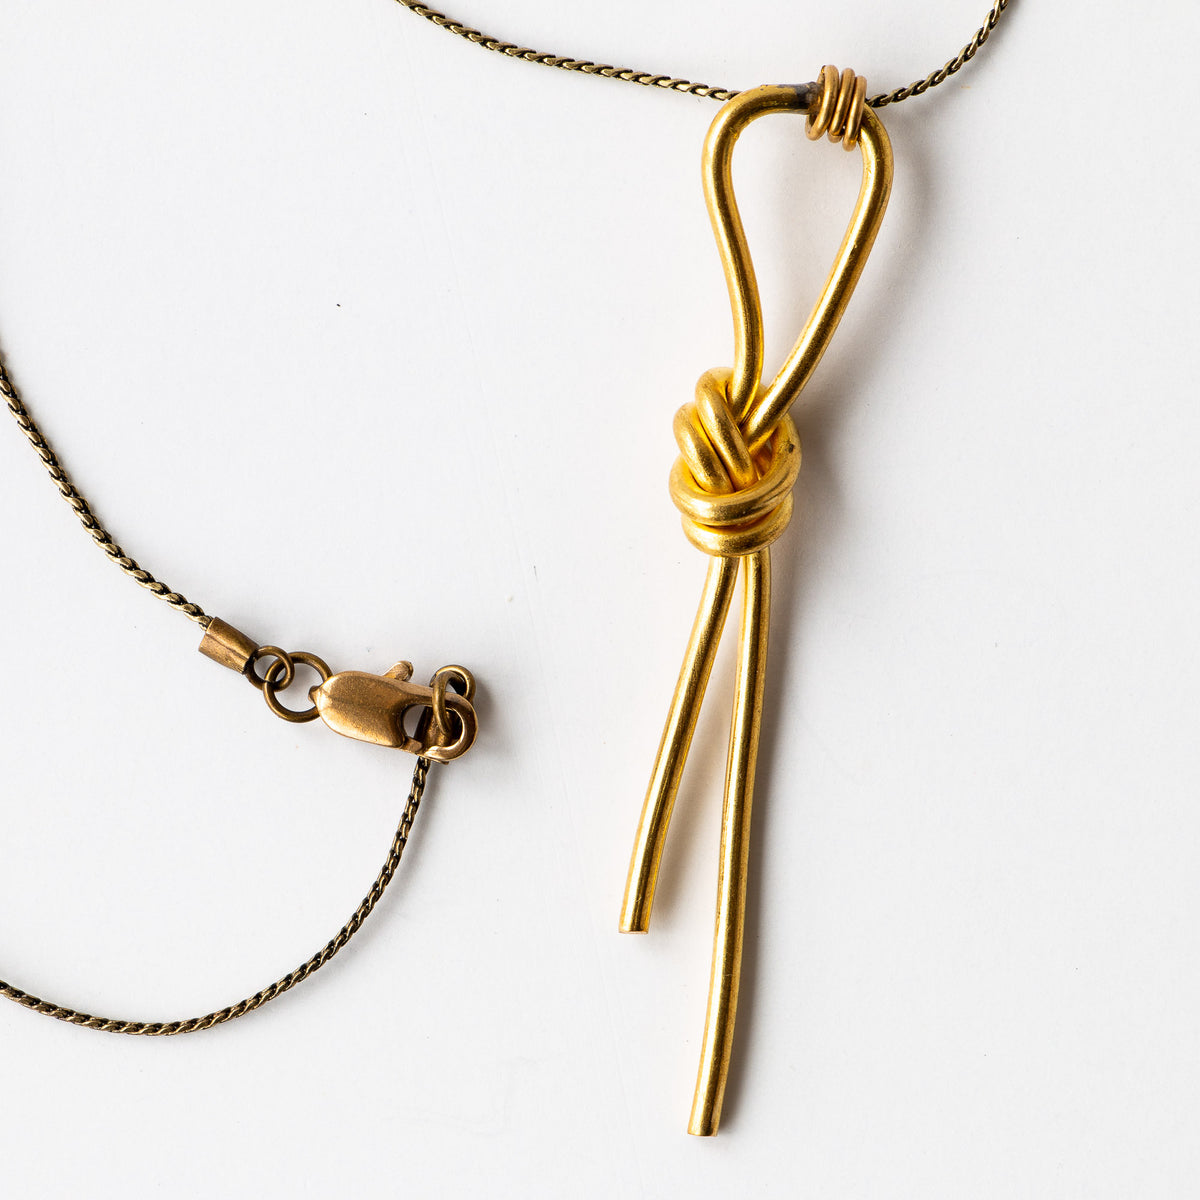 Detail - Lodo Necklace - Handcrafted in Brass - Sold by Chic & Basta